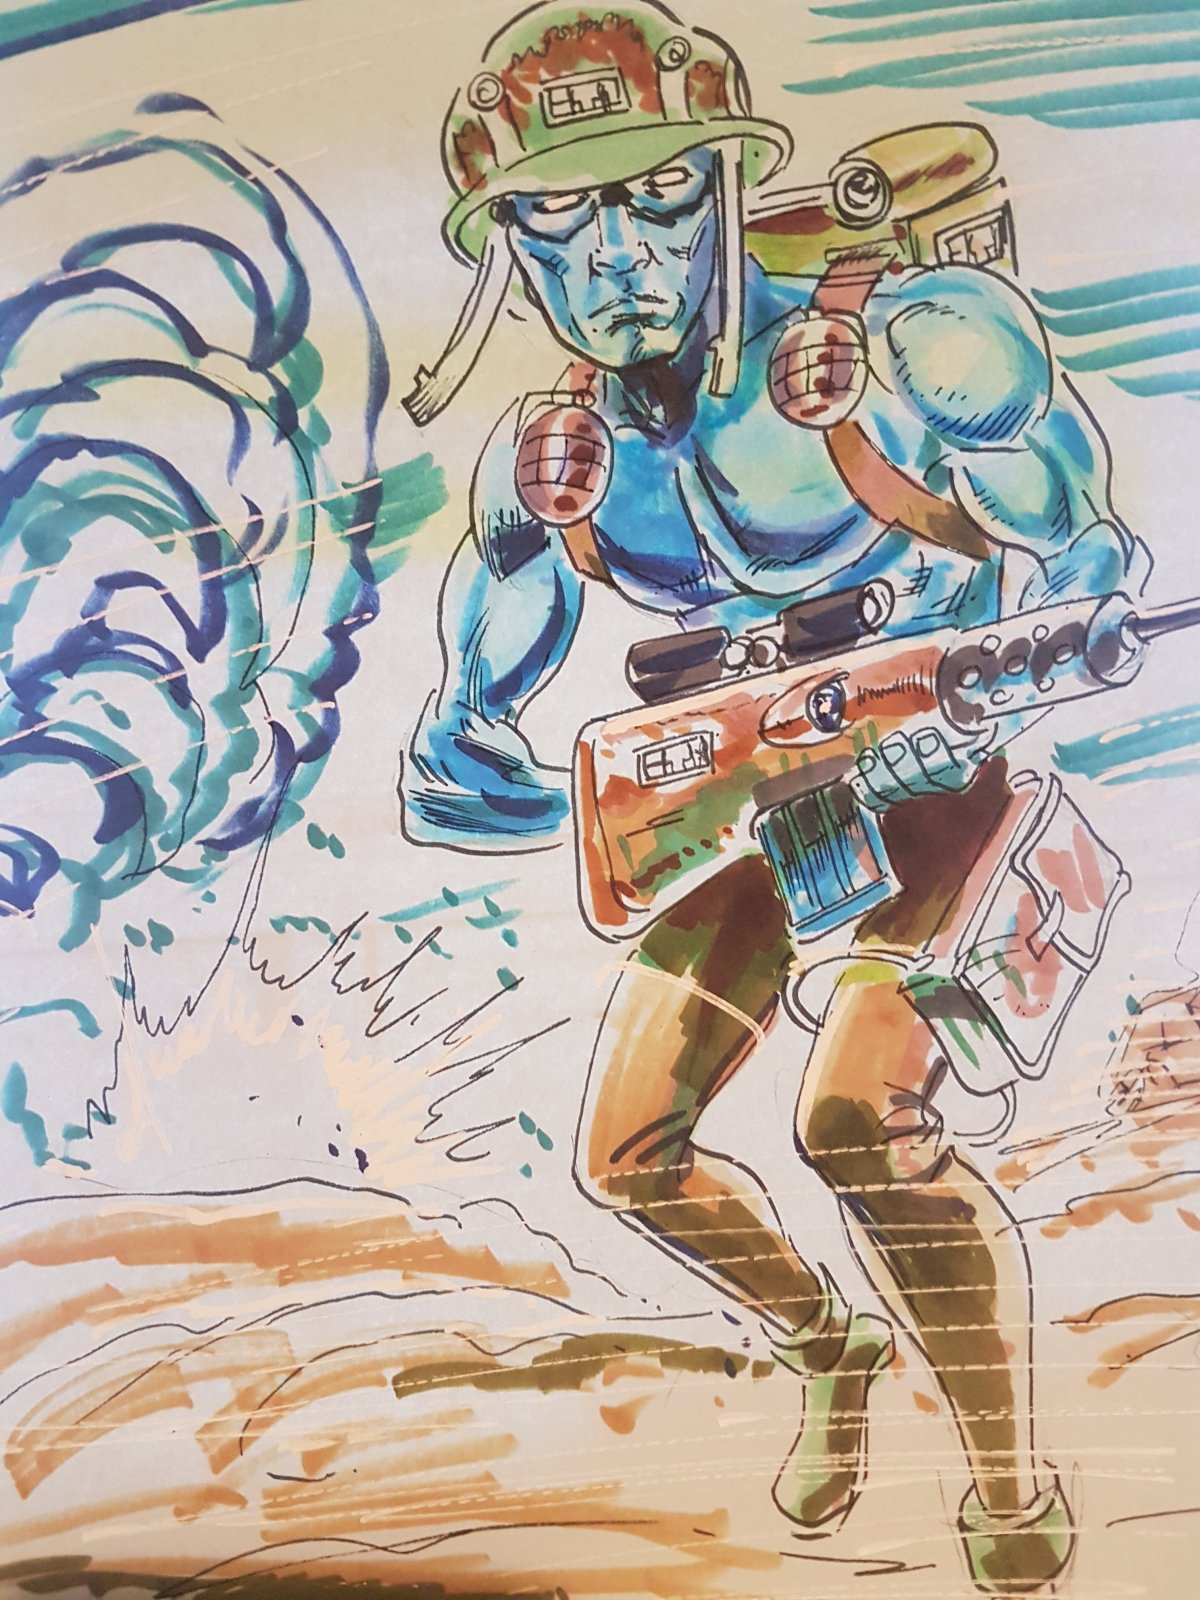 2000AD ART – Rogue Trooper by Mike Collins